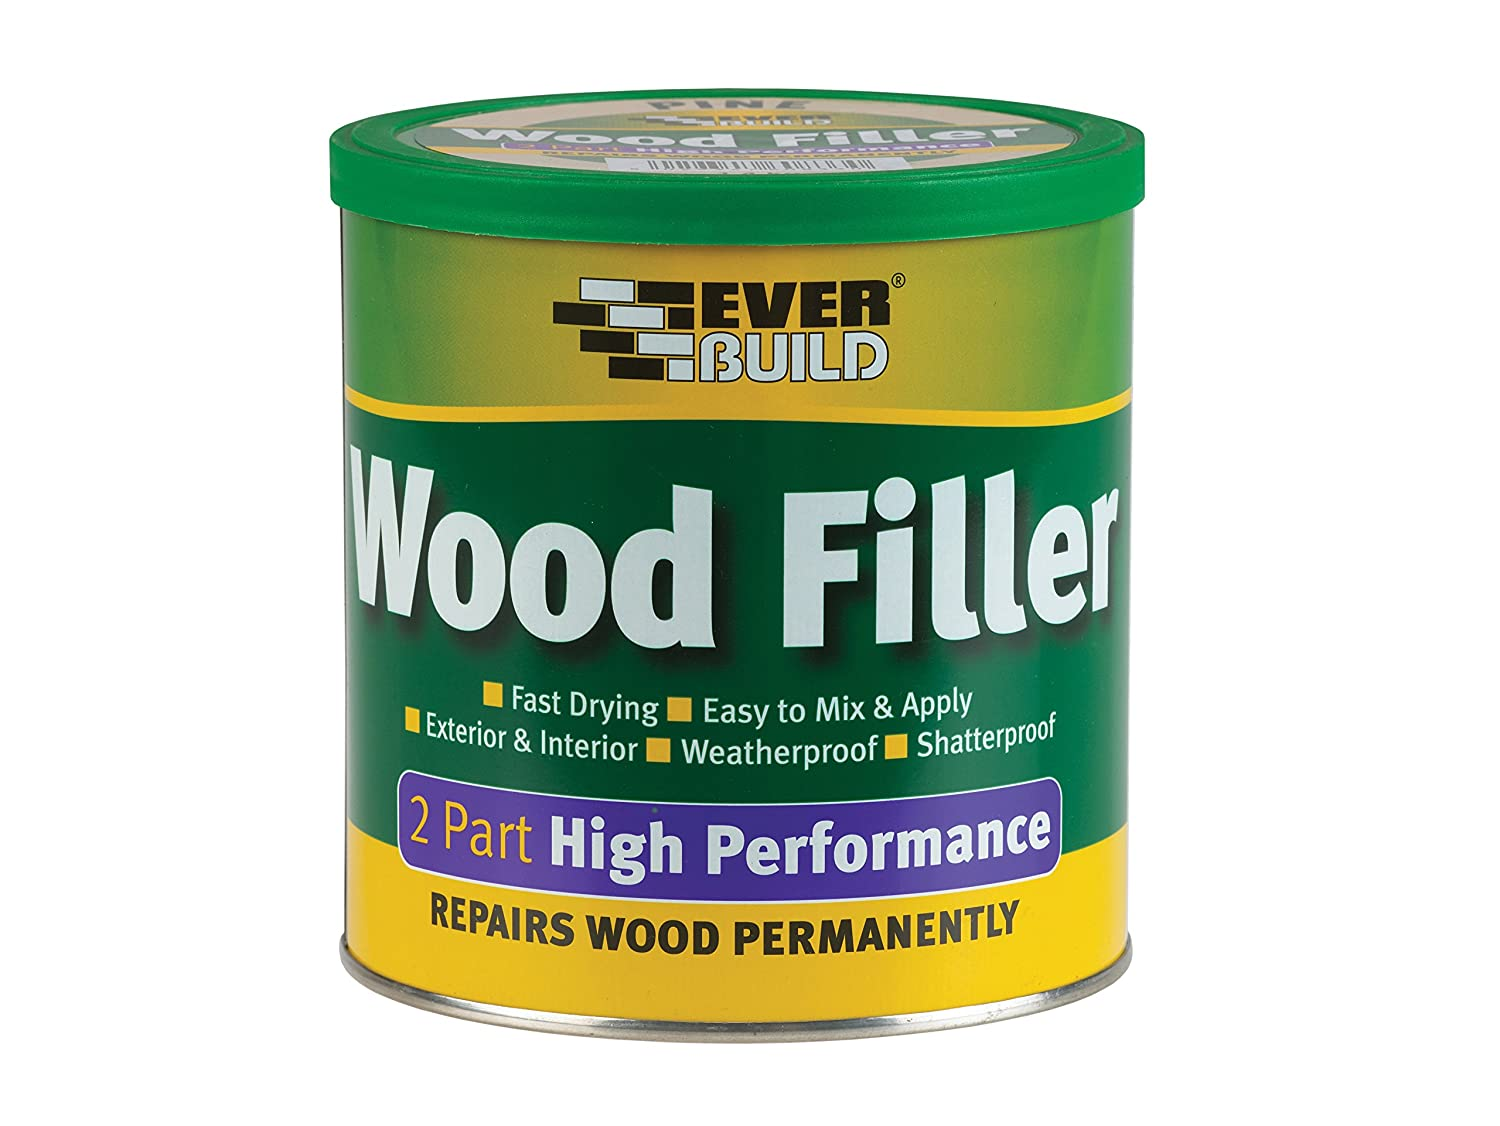 Everbuild EVBHPWFMH500 2 Part High Performance Wood Filler 500 g, Mahogany Toolbank